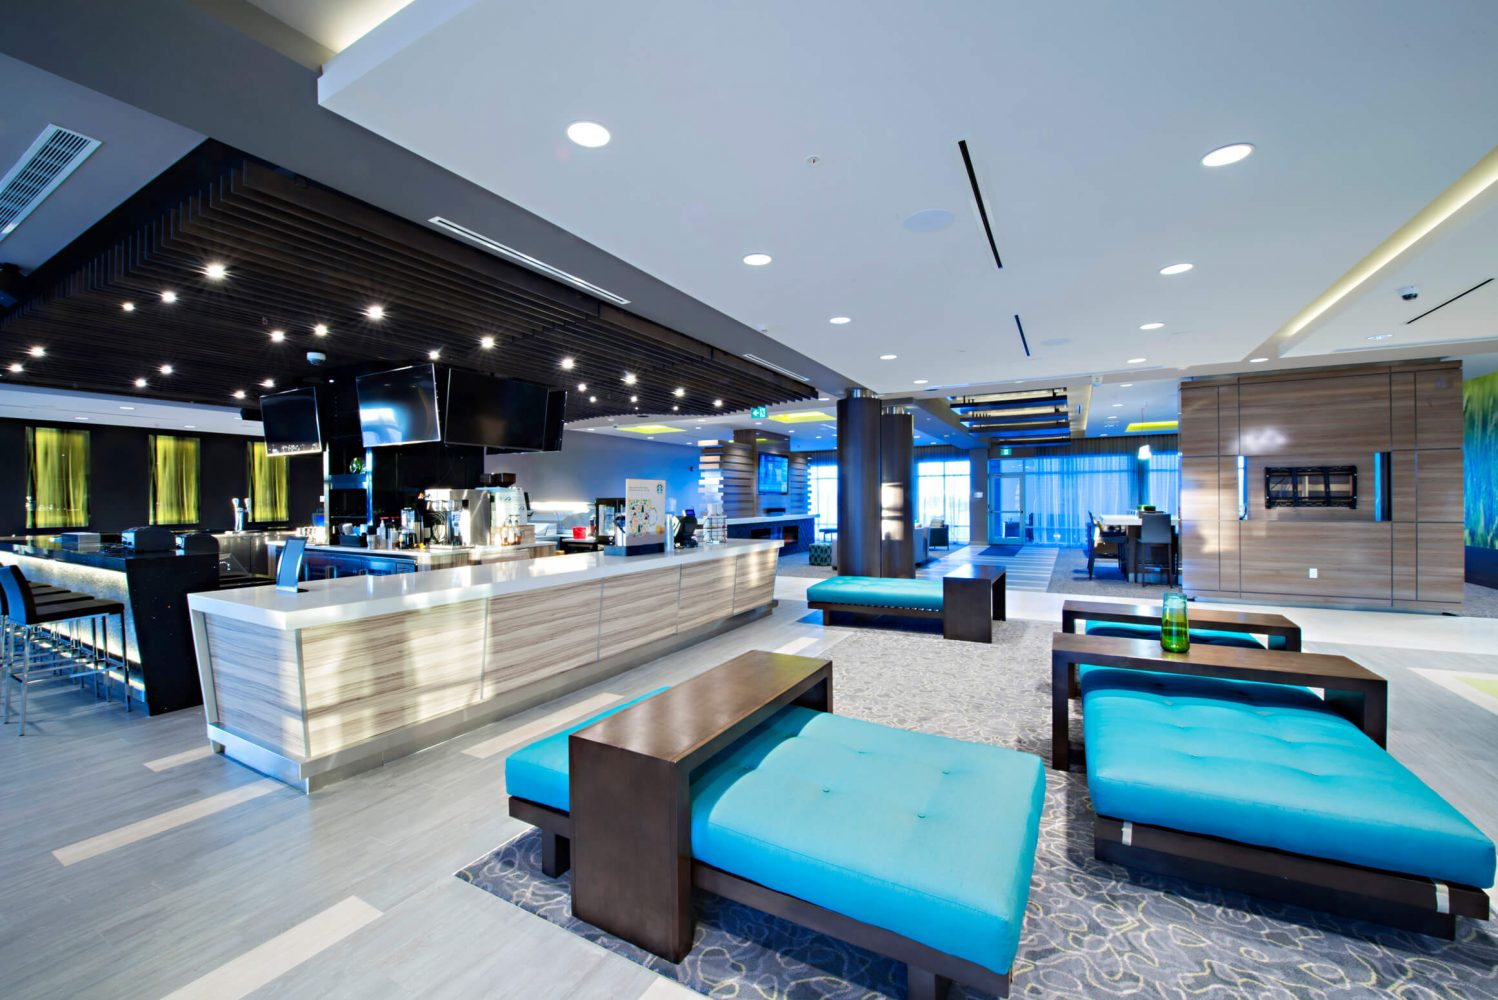 bar with blue cushioned chairs, tables, lights, and alcoholic drinks